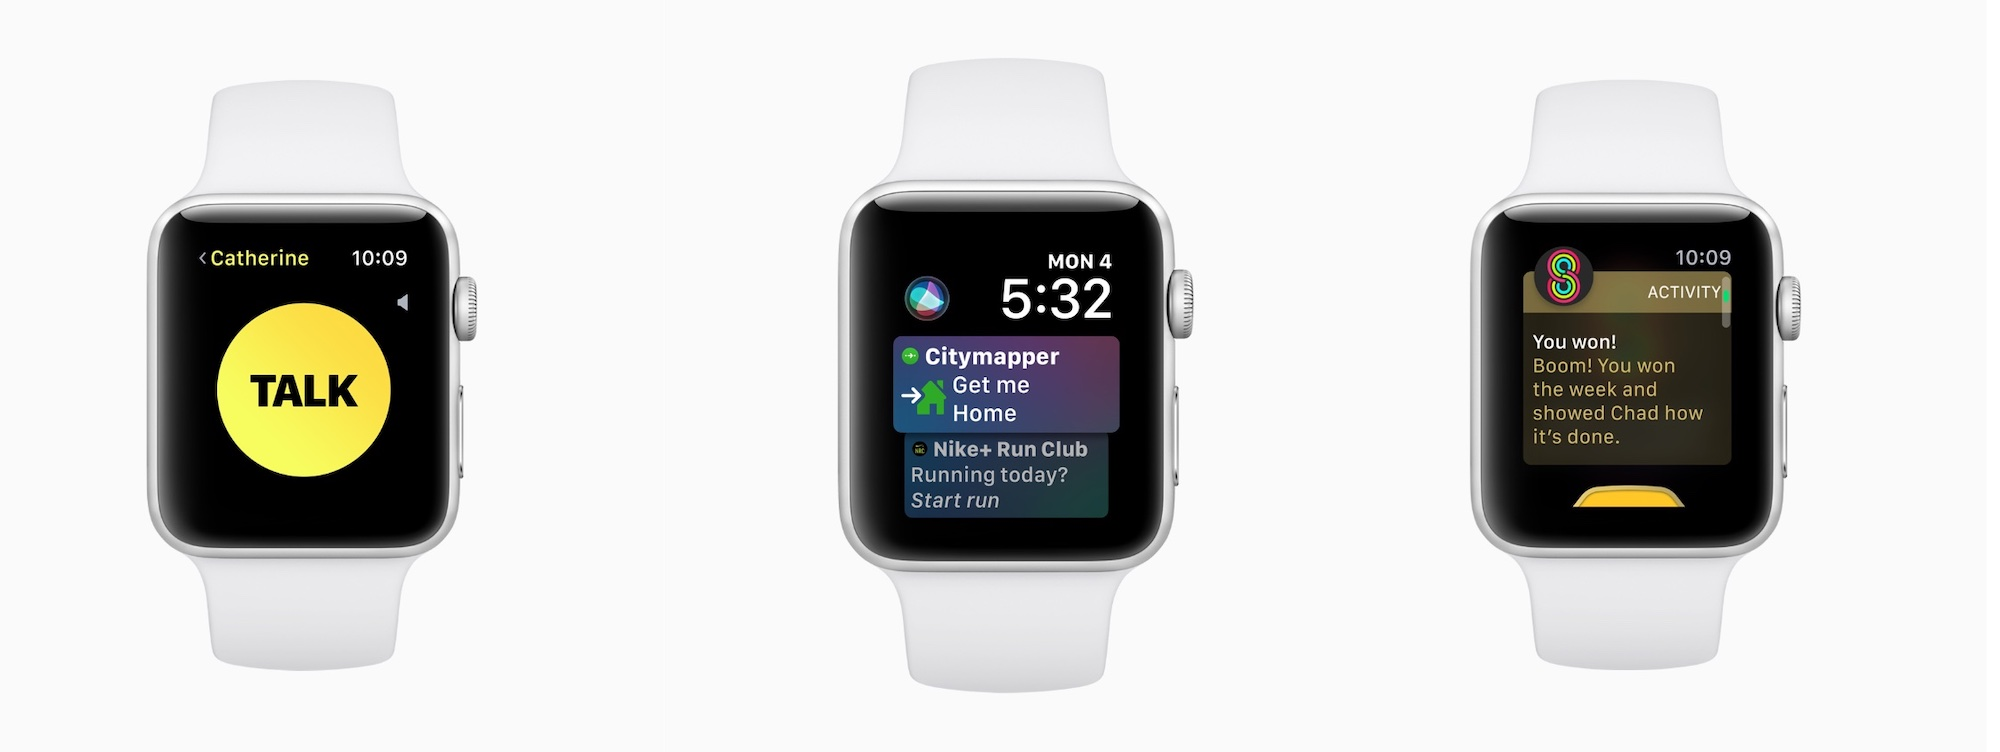 watchOS 5 features